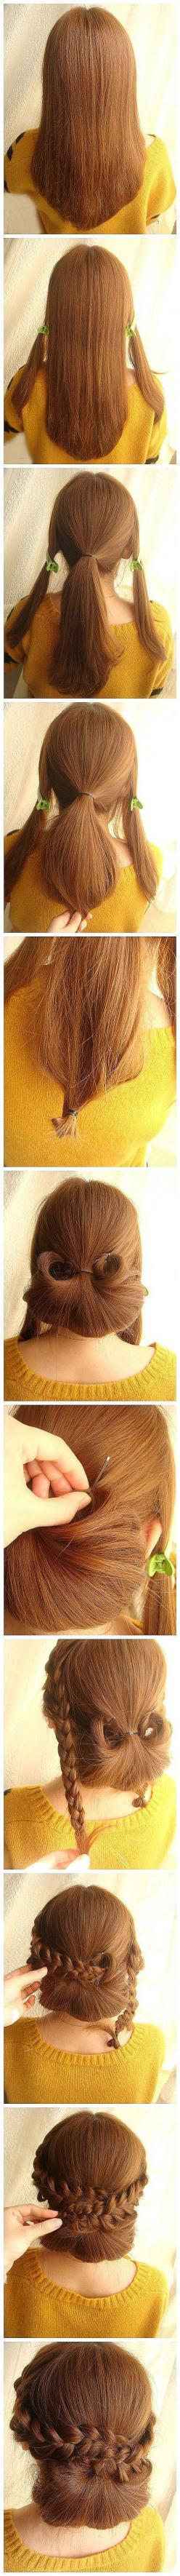 Nice for a day when you need your hair back, but fancy :): Hairstyles, Hairdos, Hair Styles, Makeup, Hair Do, Updo, Braided Bun